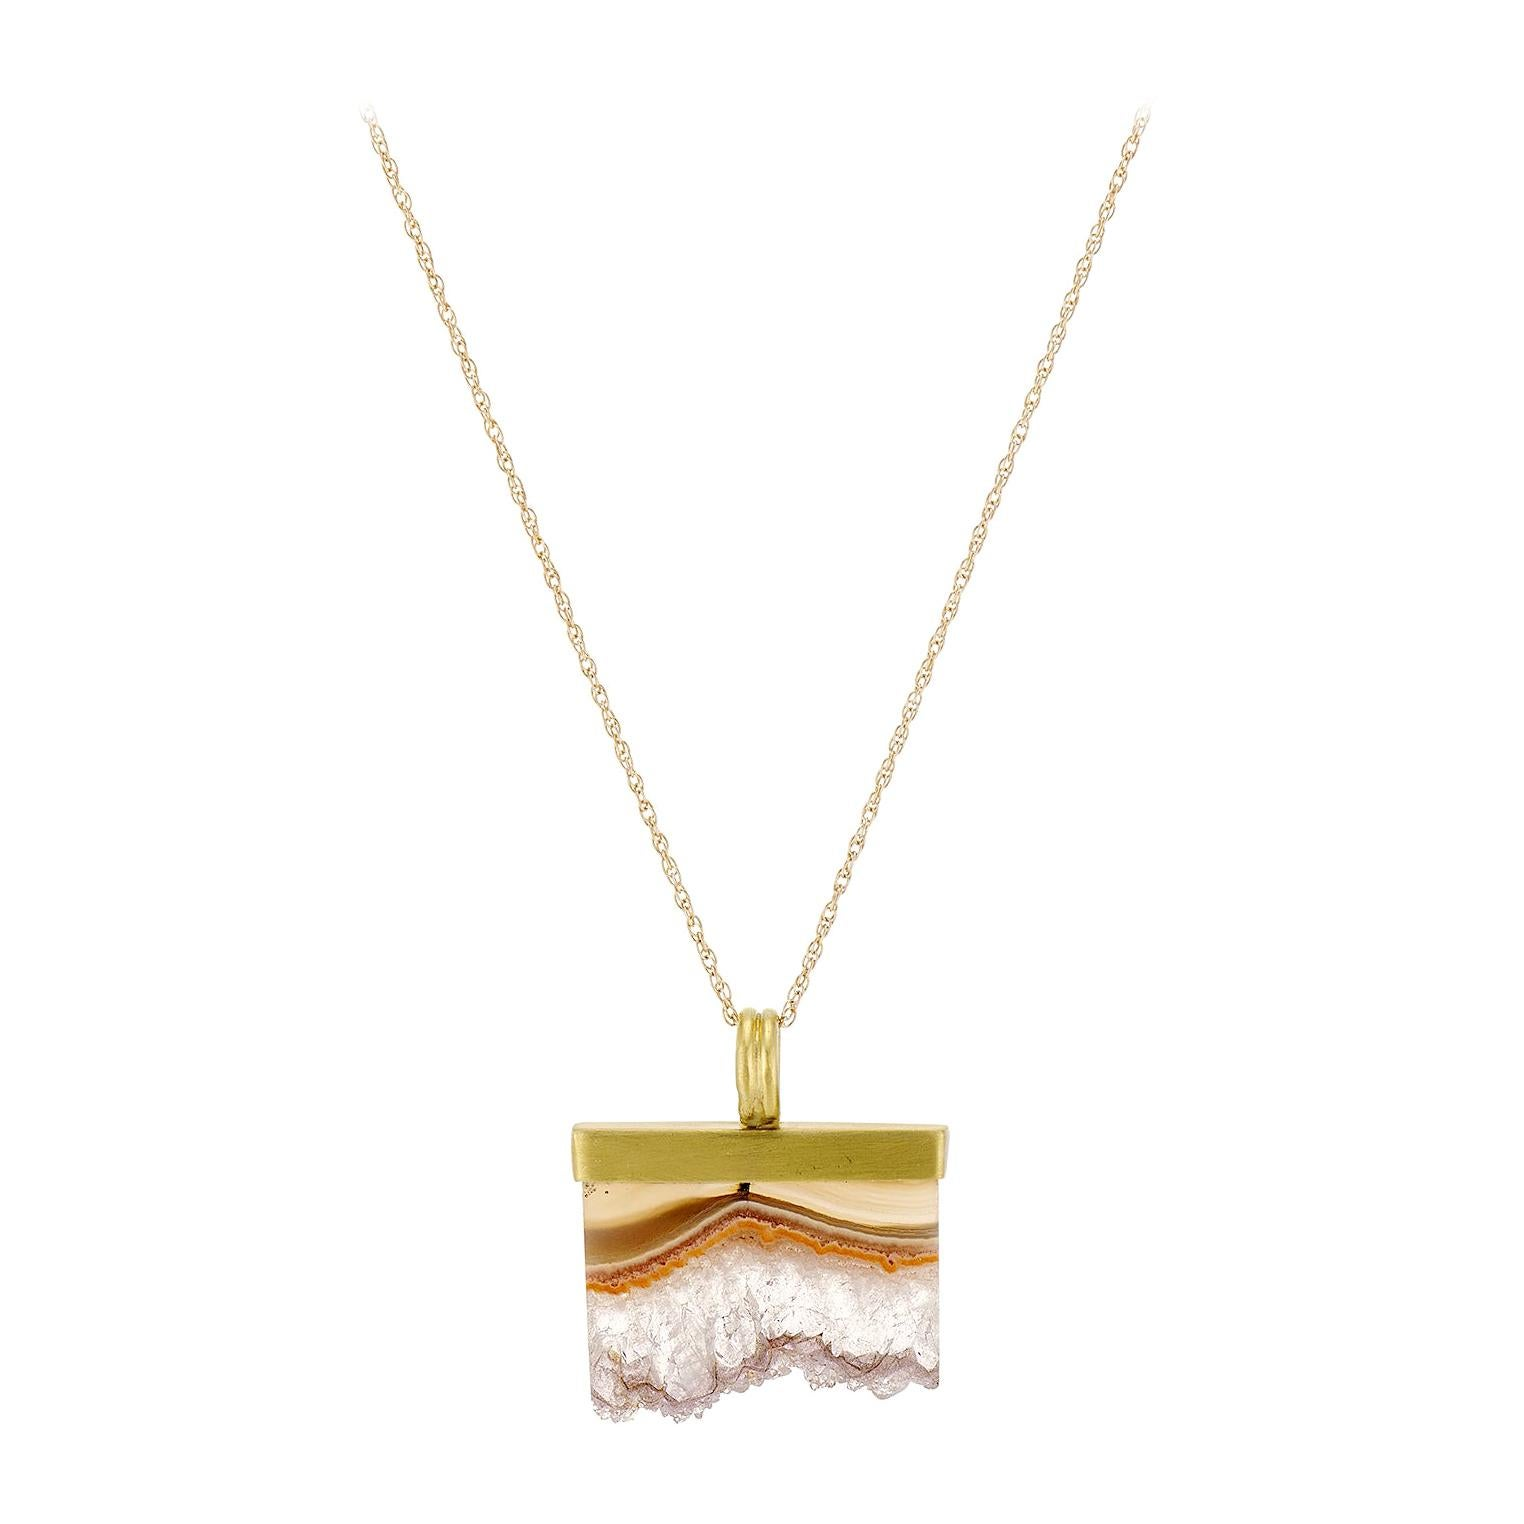 Agate Crystal, Rectangular, Gray, Lavender, Peach, Yellow Gold Pendant Necklace